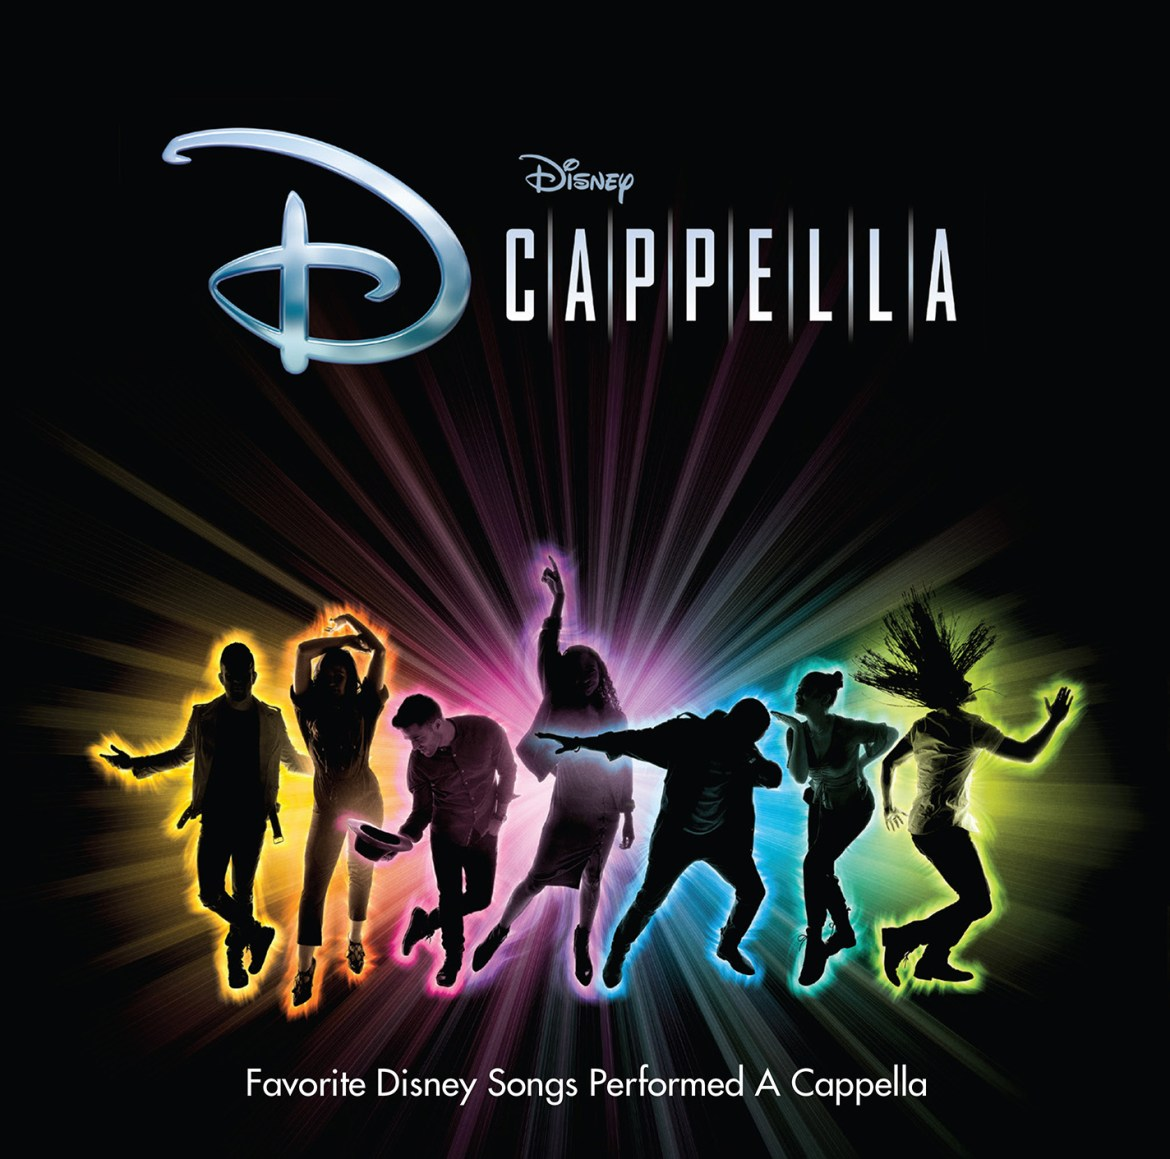 Disney DCappella Album and Tour Announcement